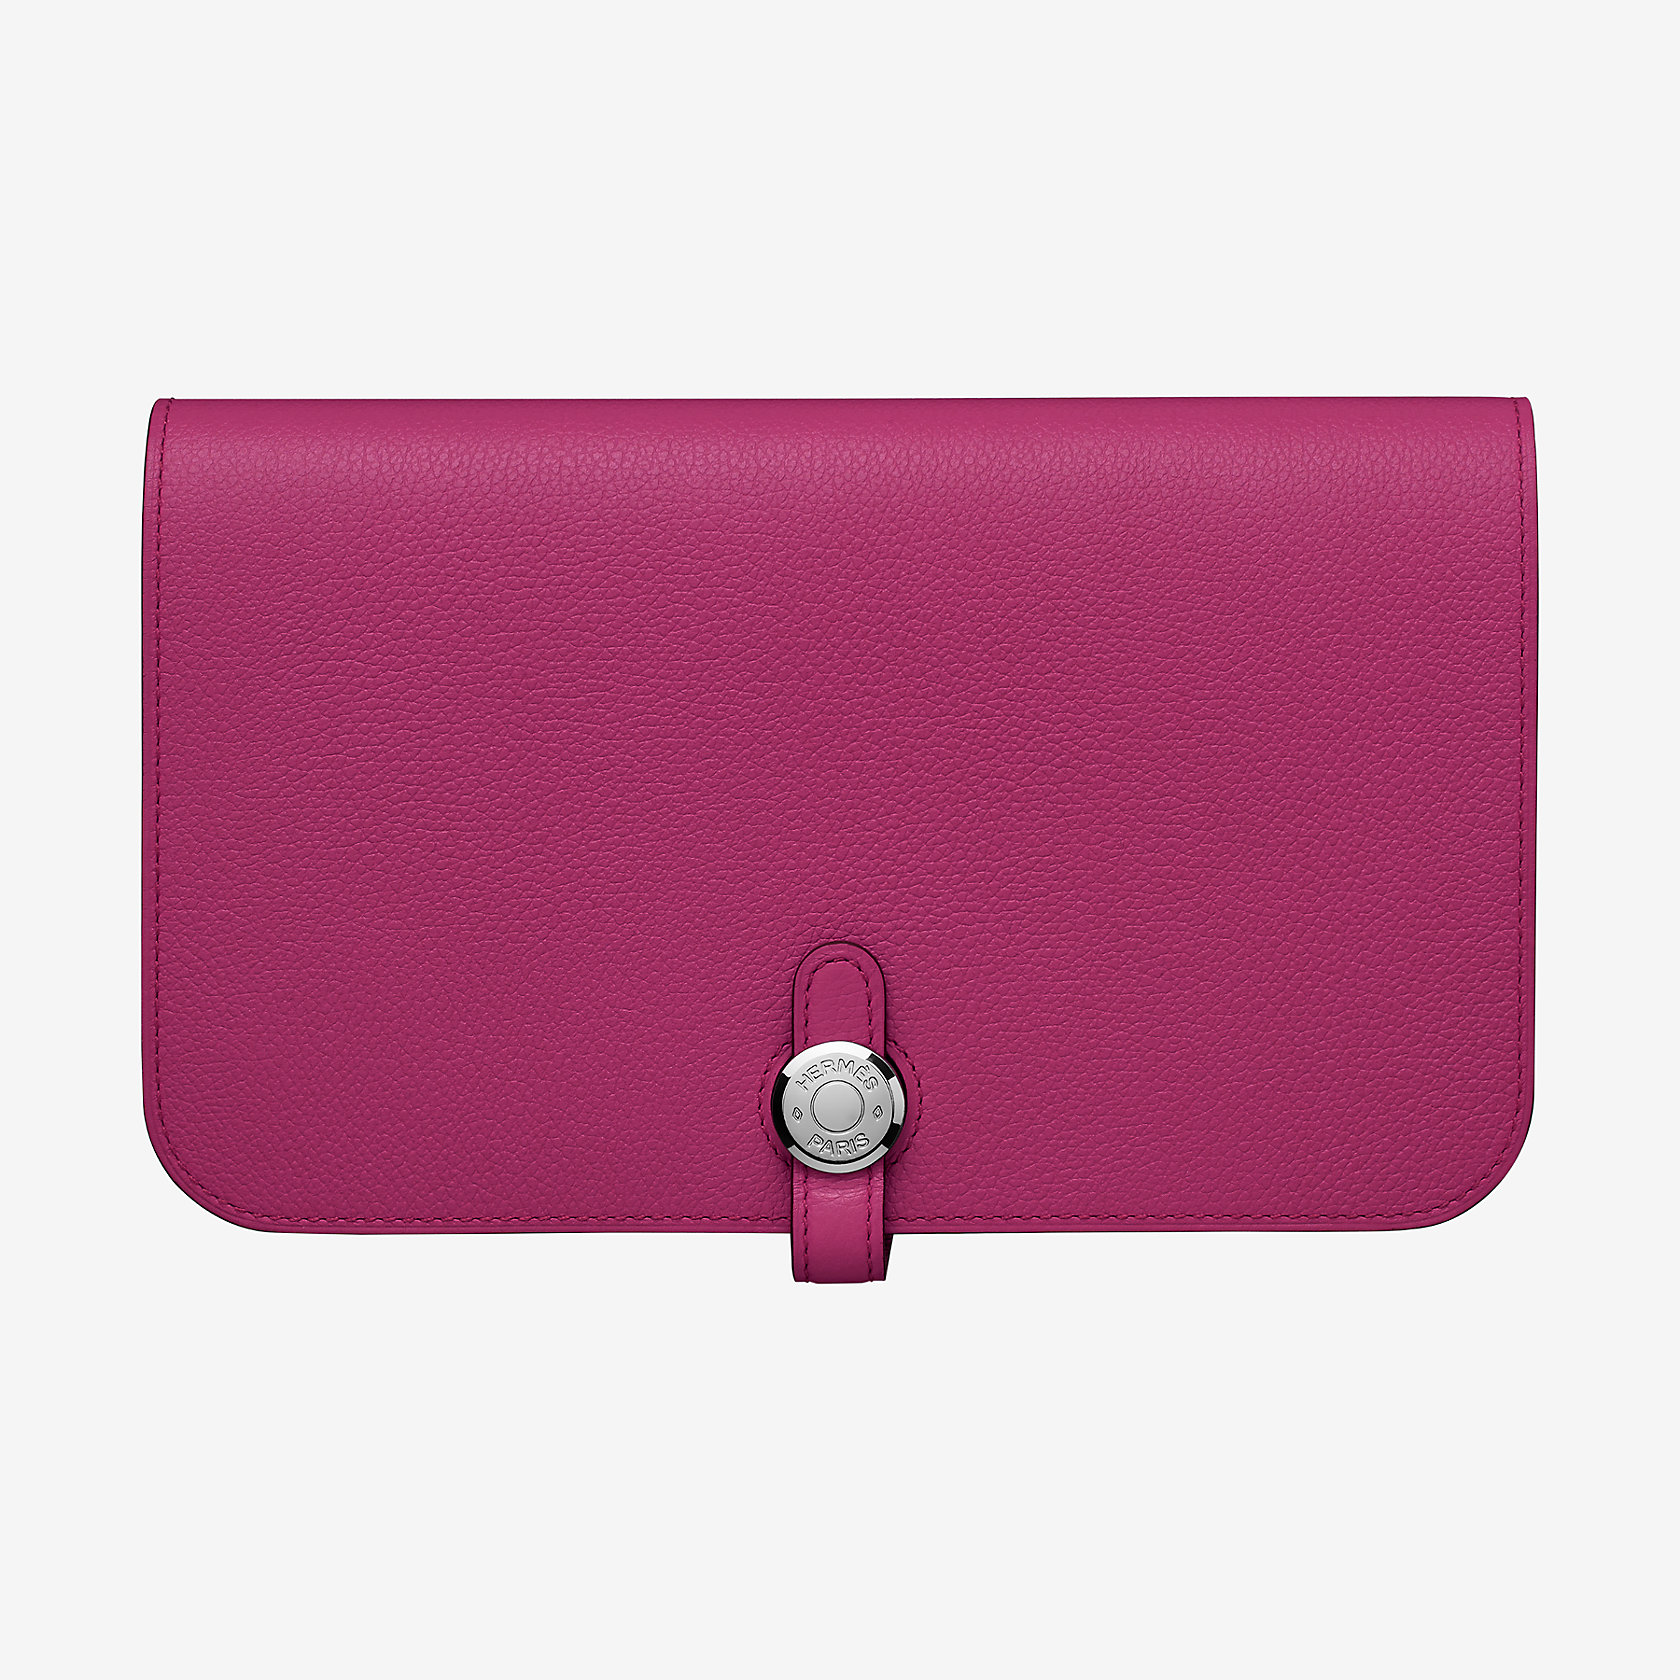 Small leather goods for women latest creations - Hermès